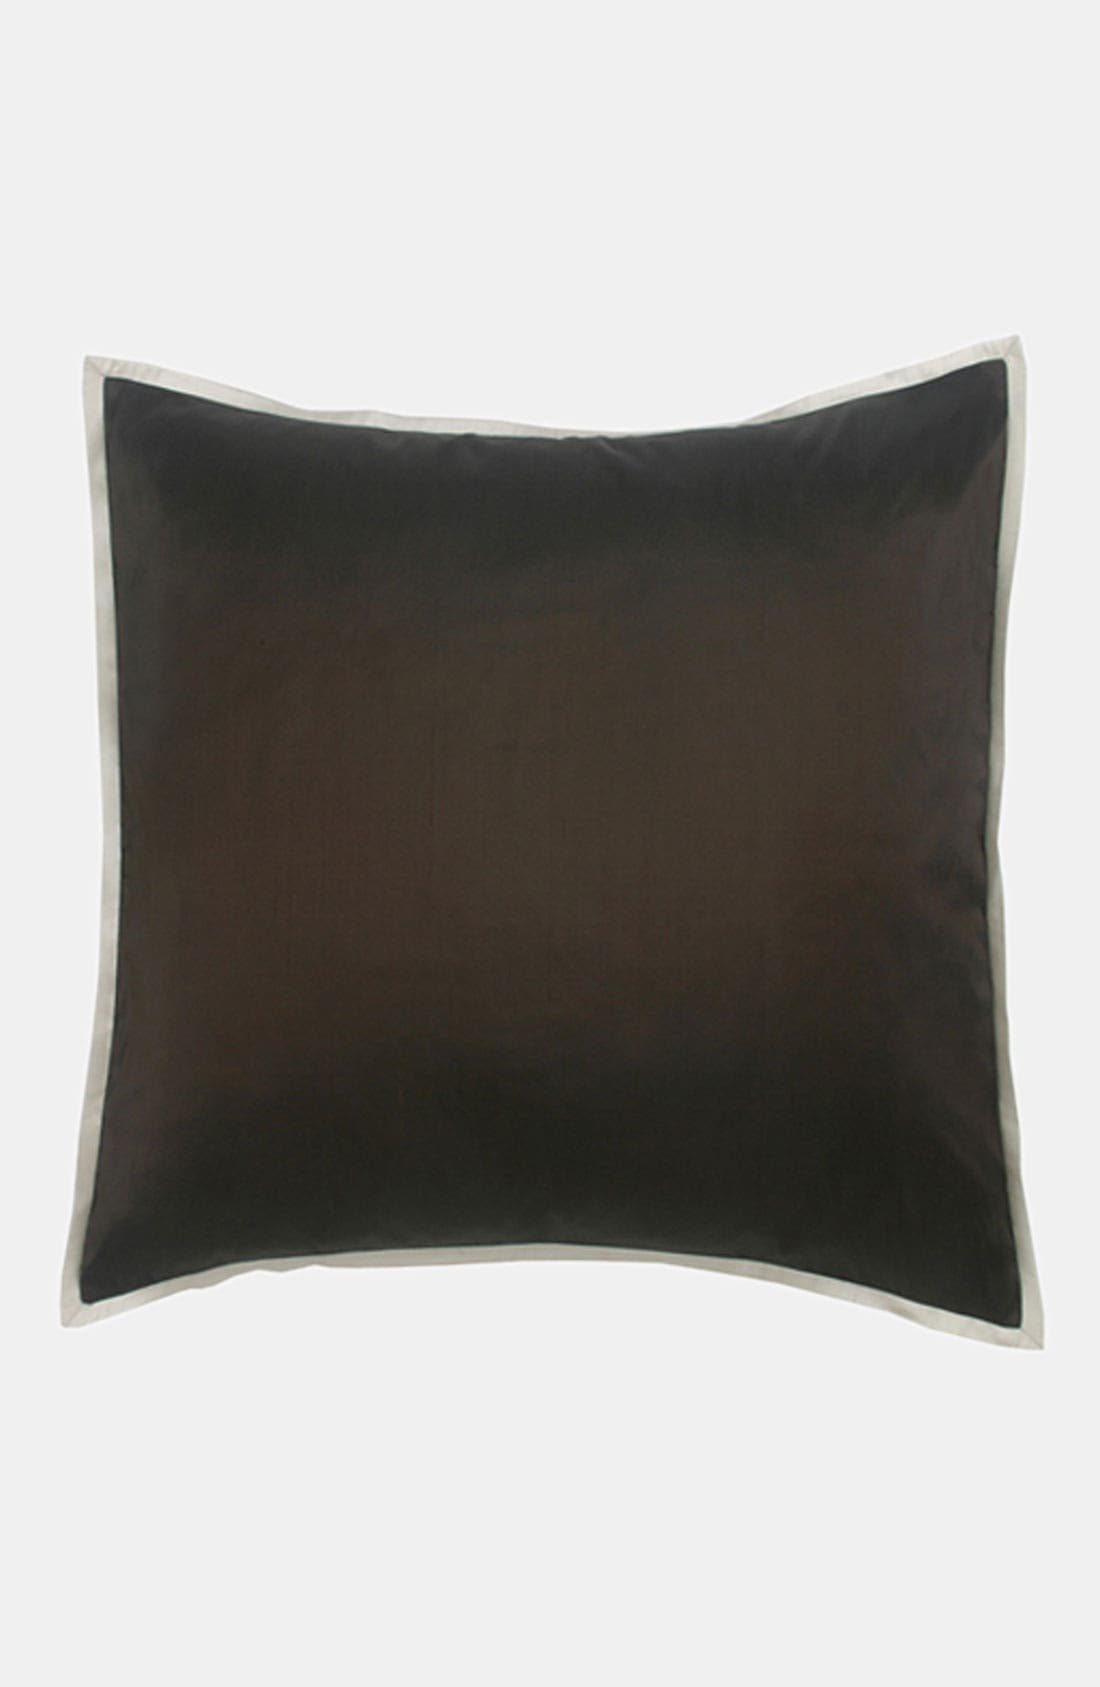 Alternate Image 1 Selected - Blissliving Home 'Lucca Cocoa' Euro Pillow (Online Only)